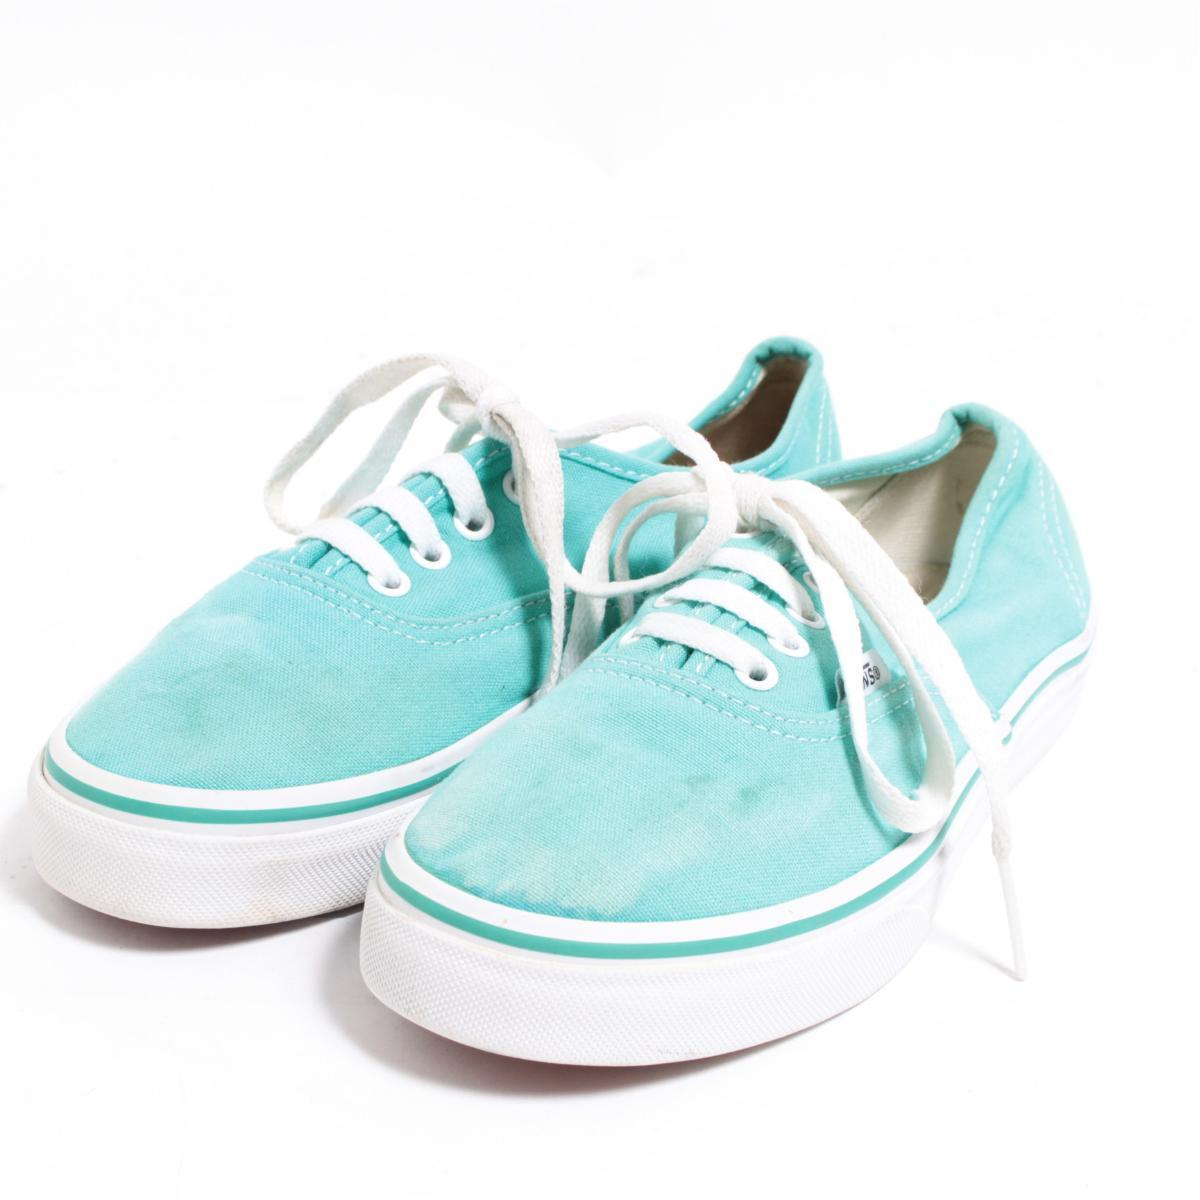 1a78cb9abf Vans VANS AUTHENTIC authentic sneakers Youth size 3 Lady s 21.5cm  bol6520